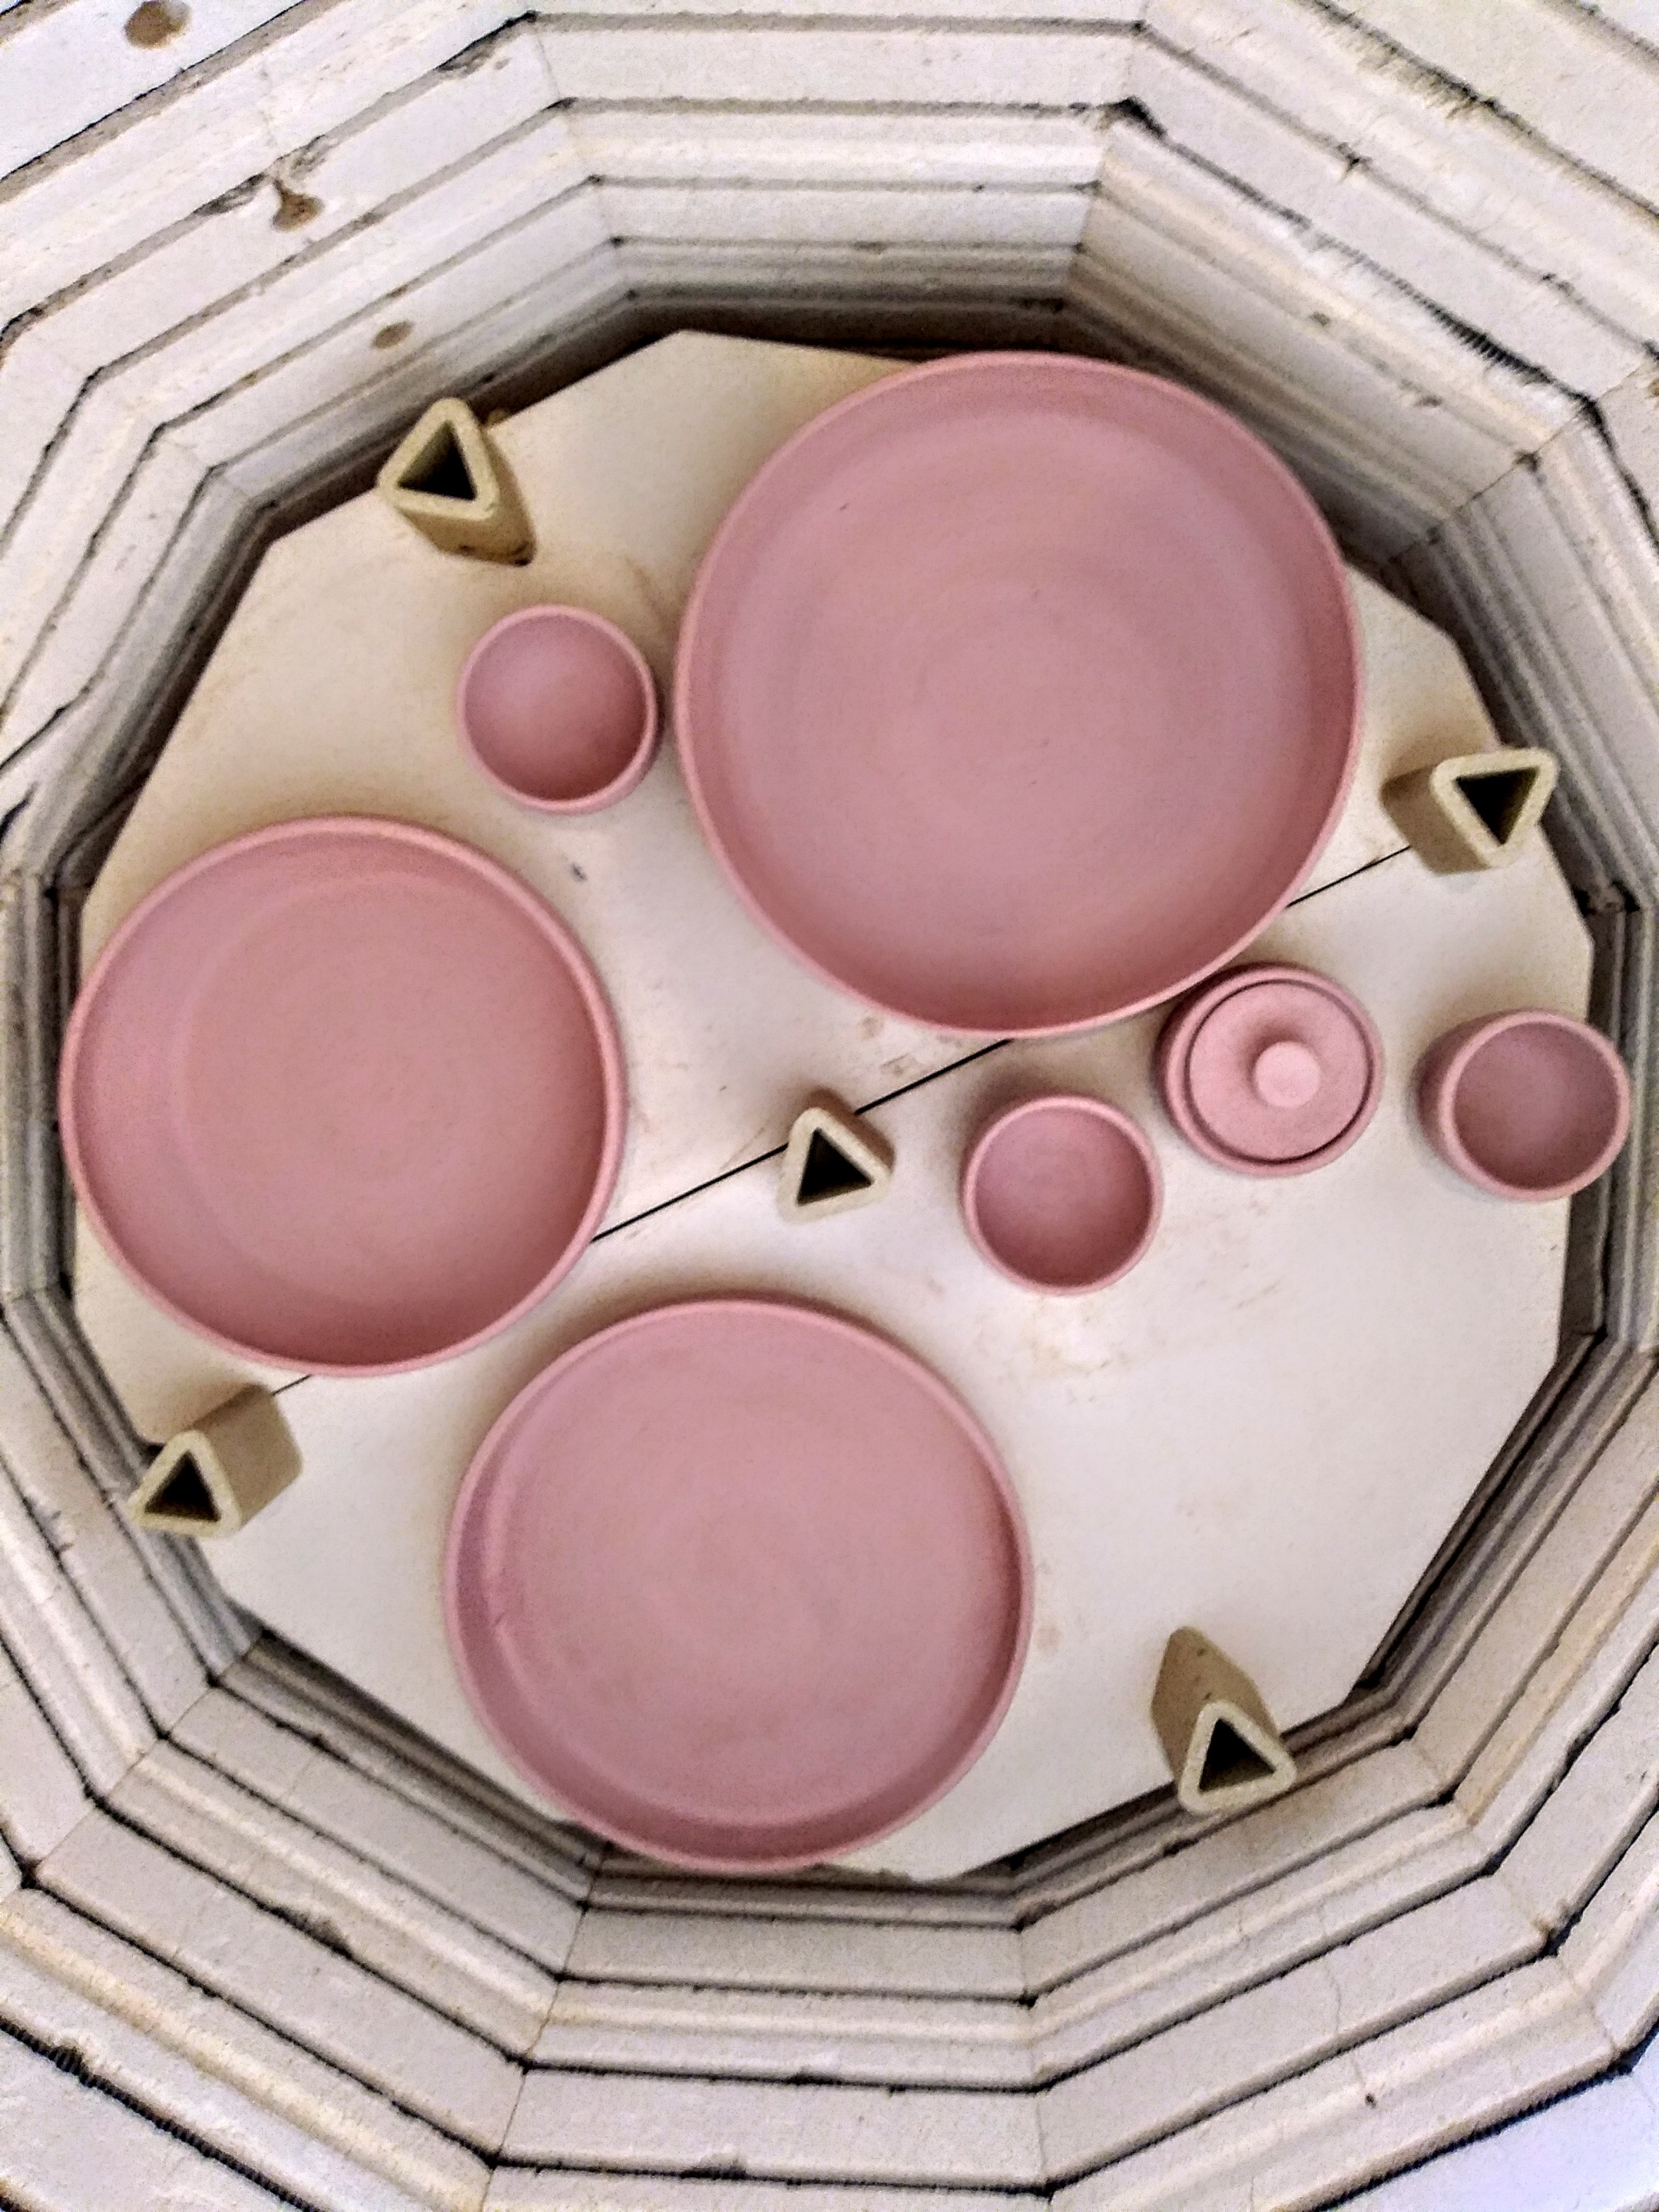 Pottery Wheel Thrown Ceramics made by Little Clay Studio in Austin, Texas Bisque Fired in the Kiln. Large bowls and oversized ceramic plates for serving at parties and at home.